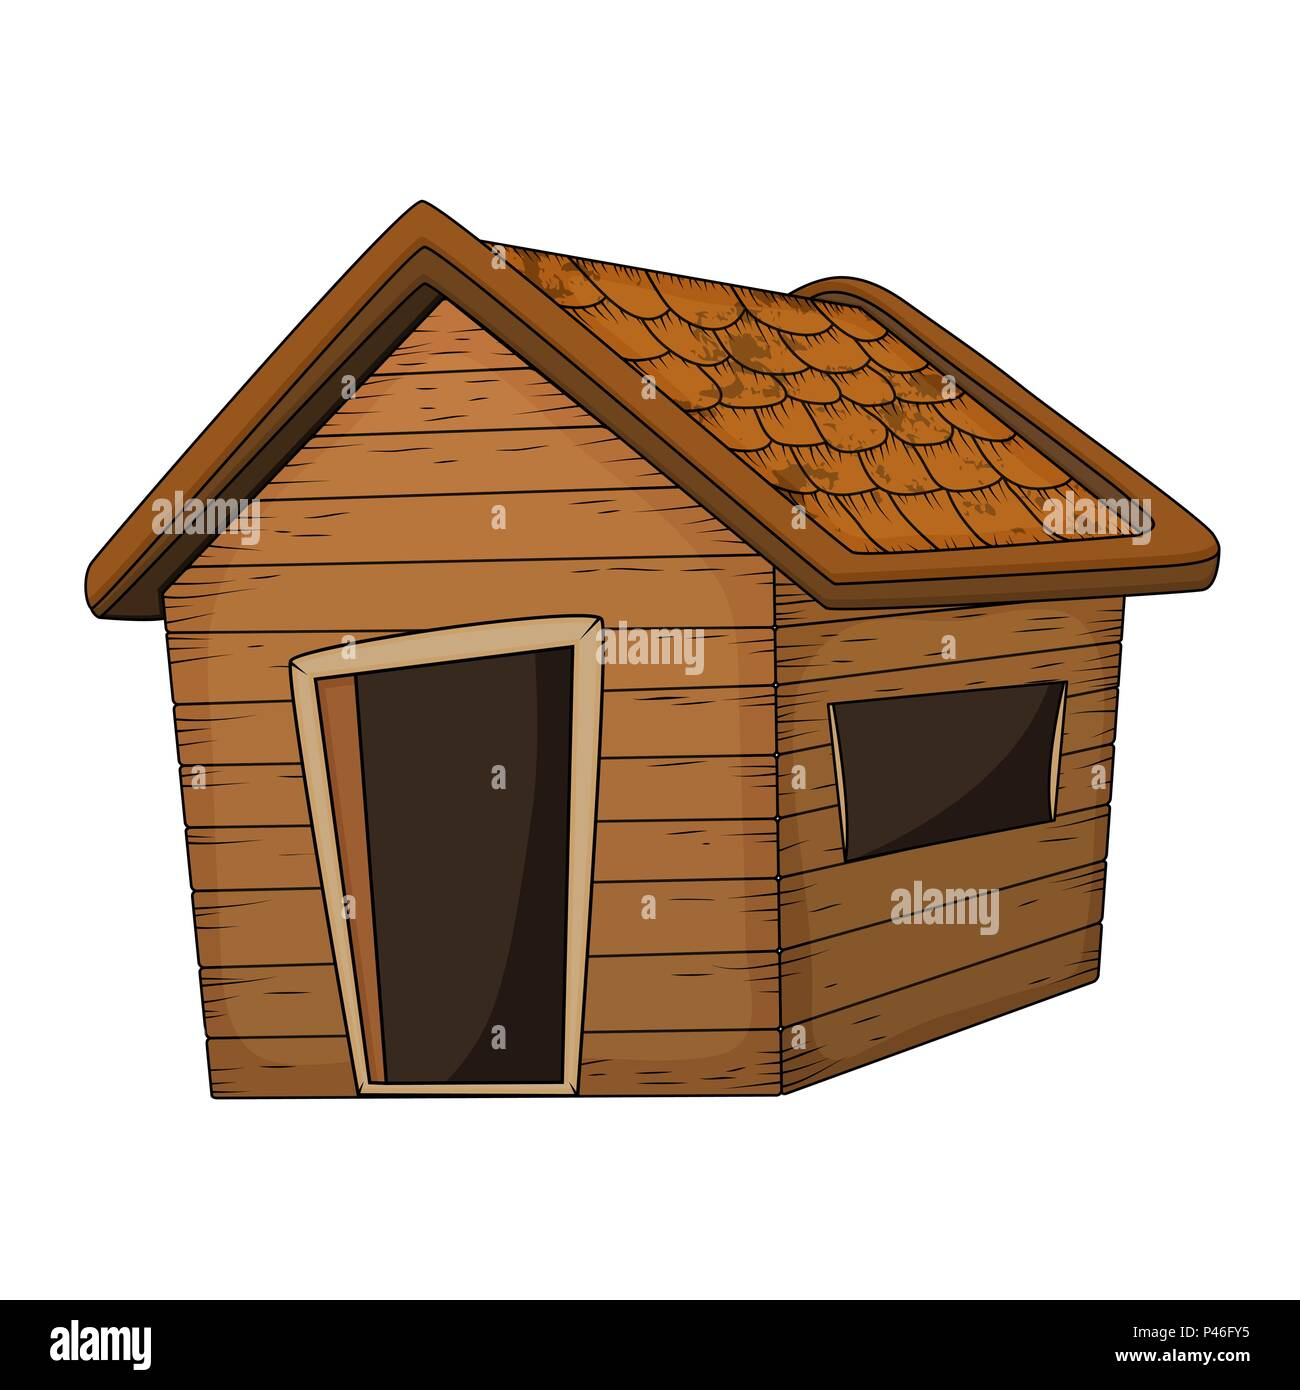 wooden house cartoon vector design isolated on white - Stock Vector